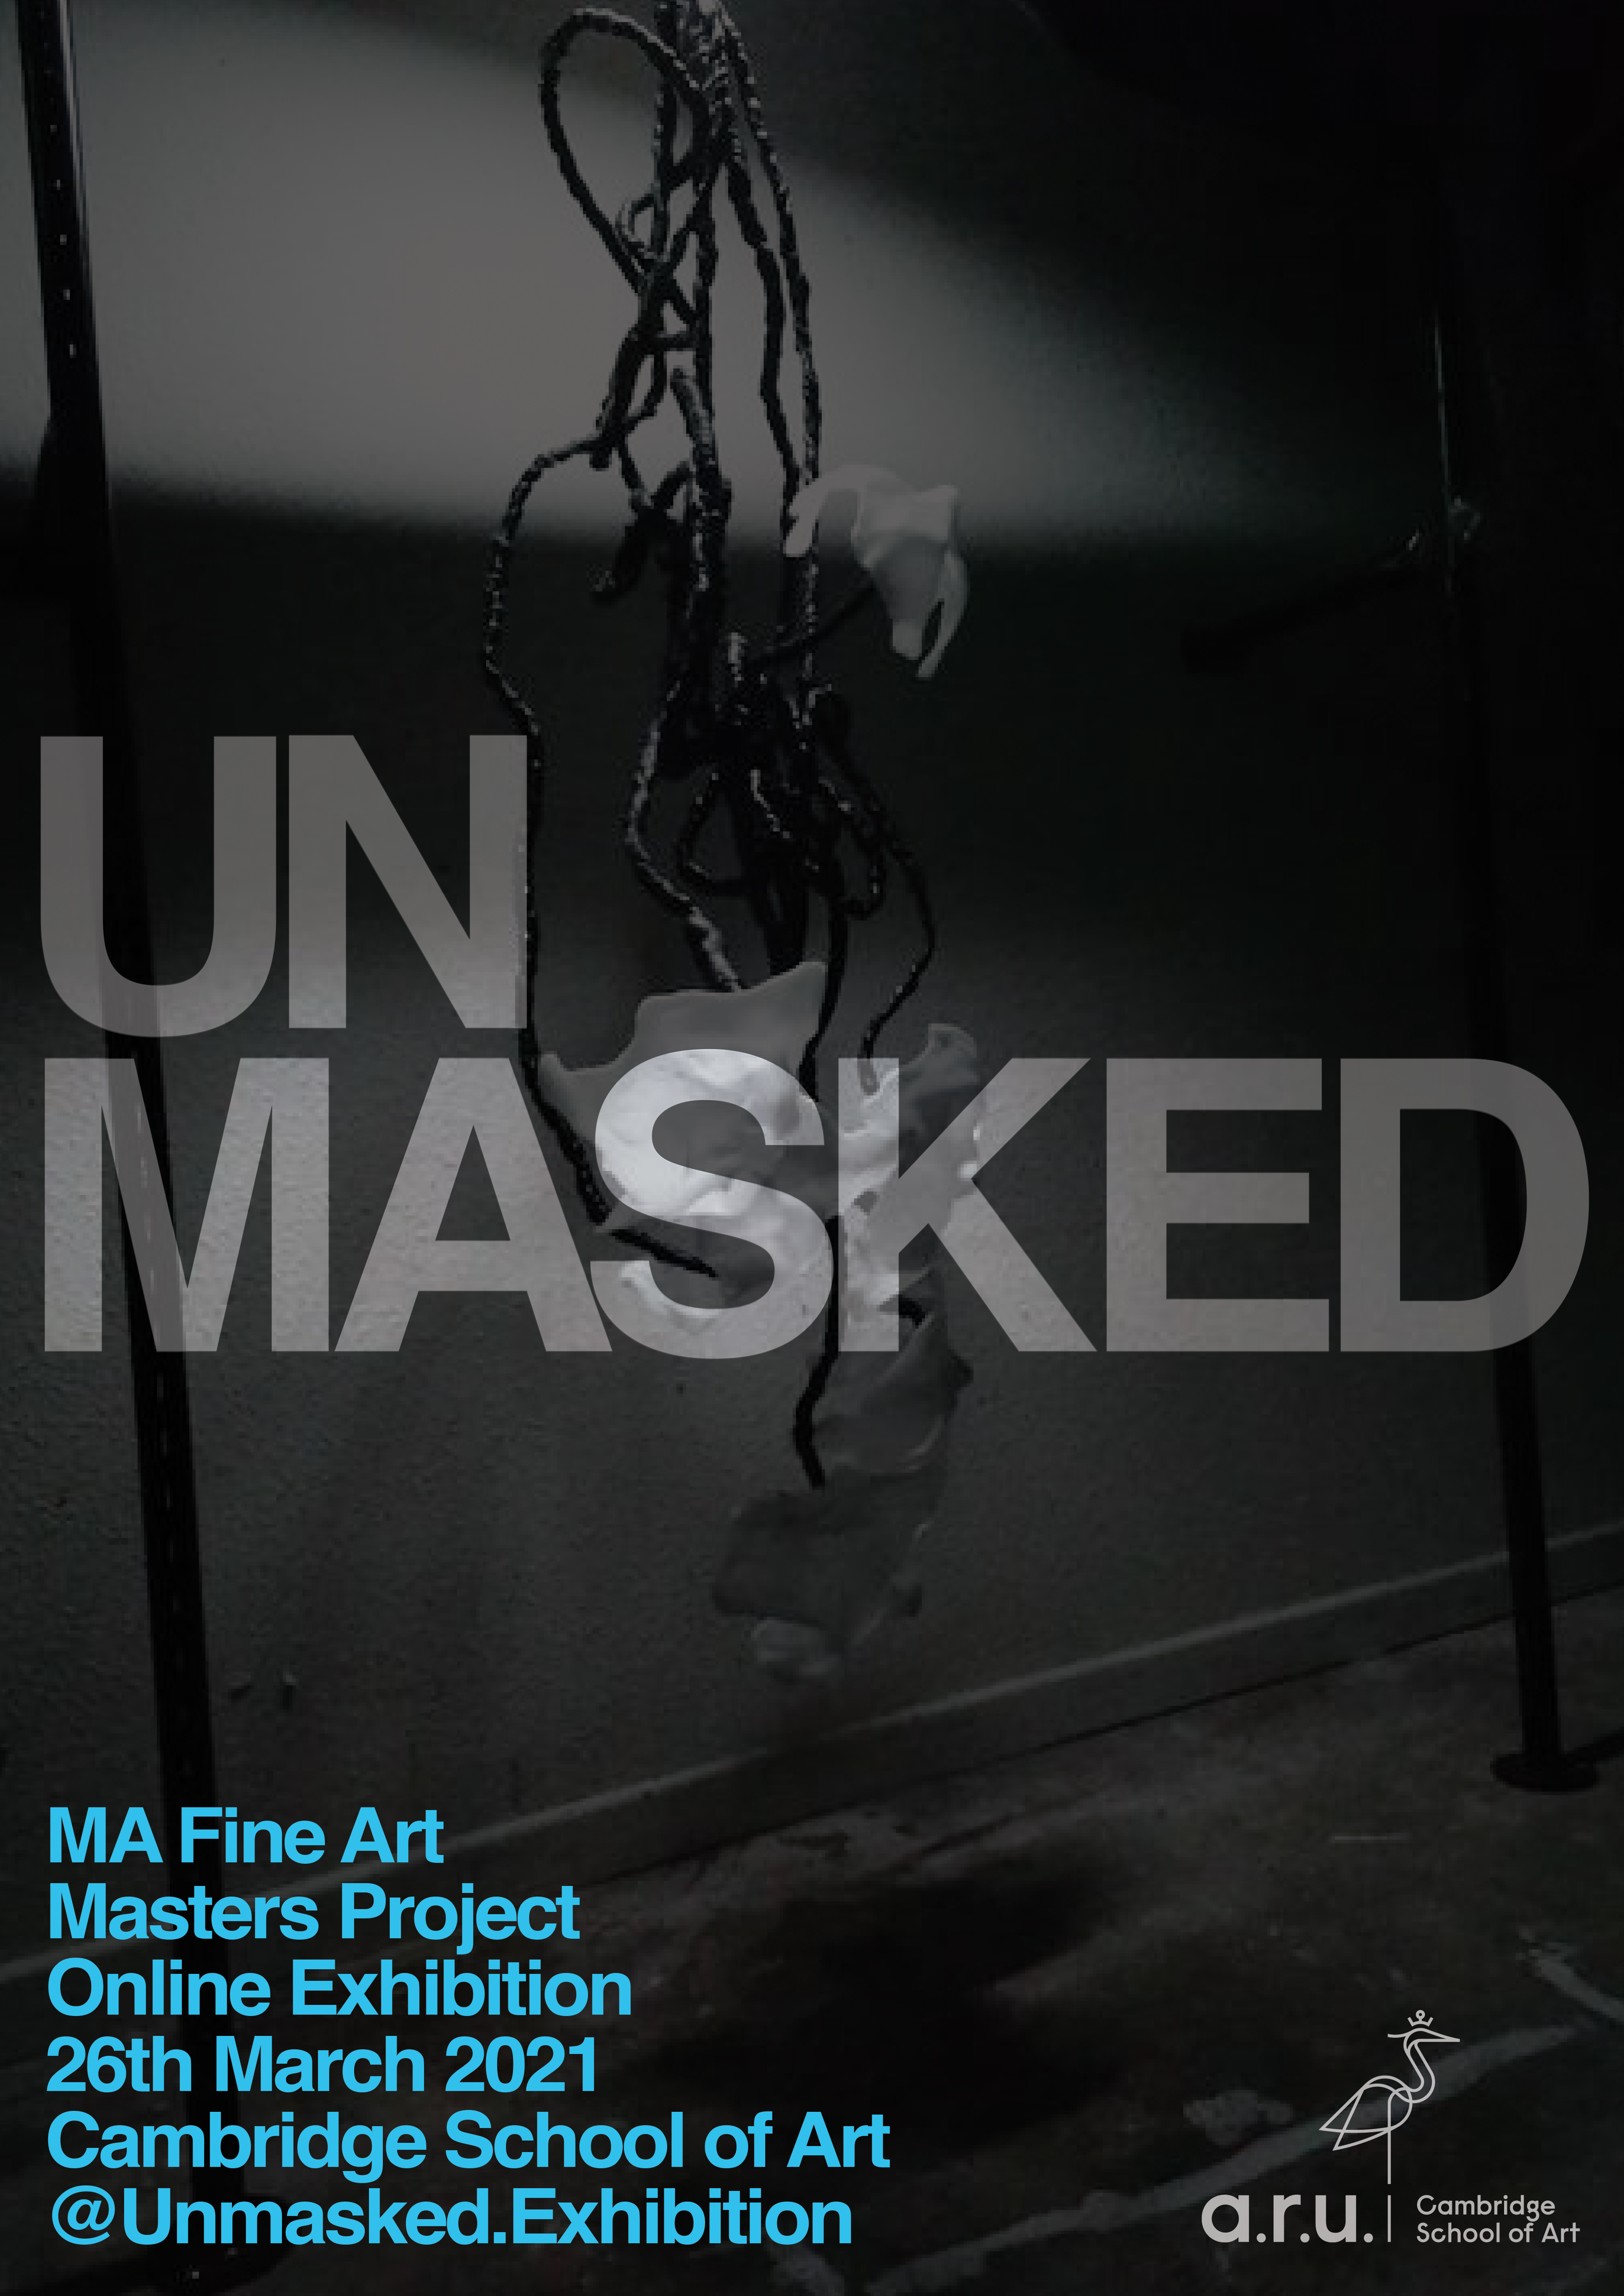 Unmasked exhibition poster.